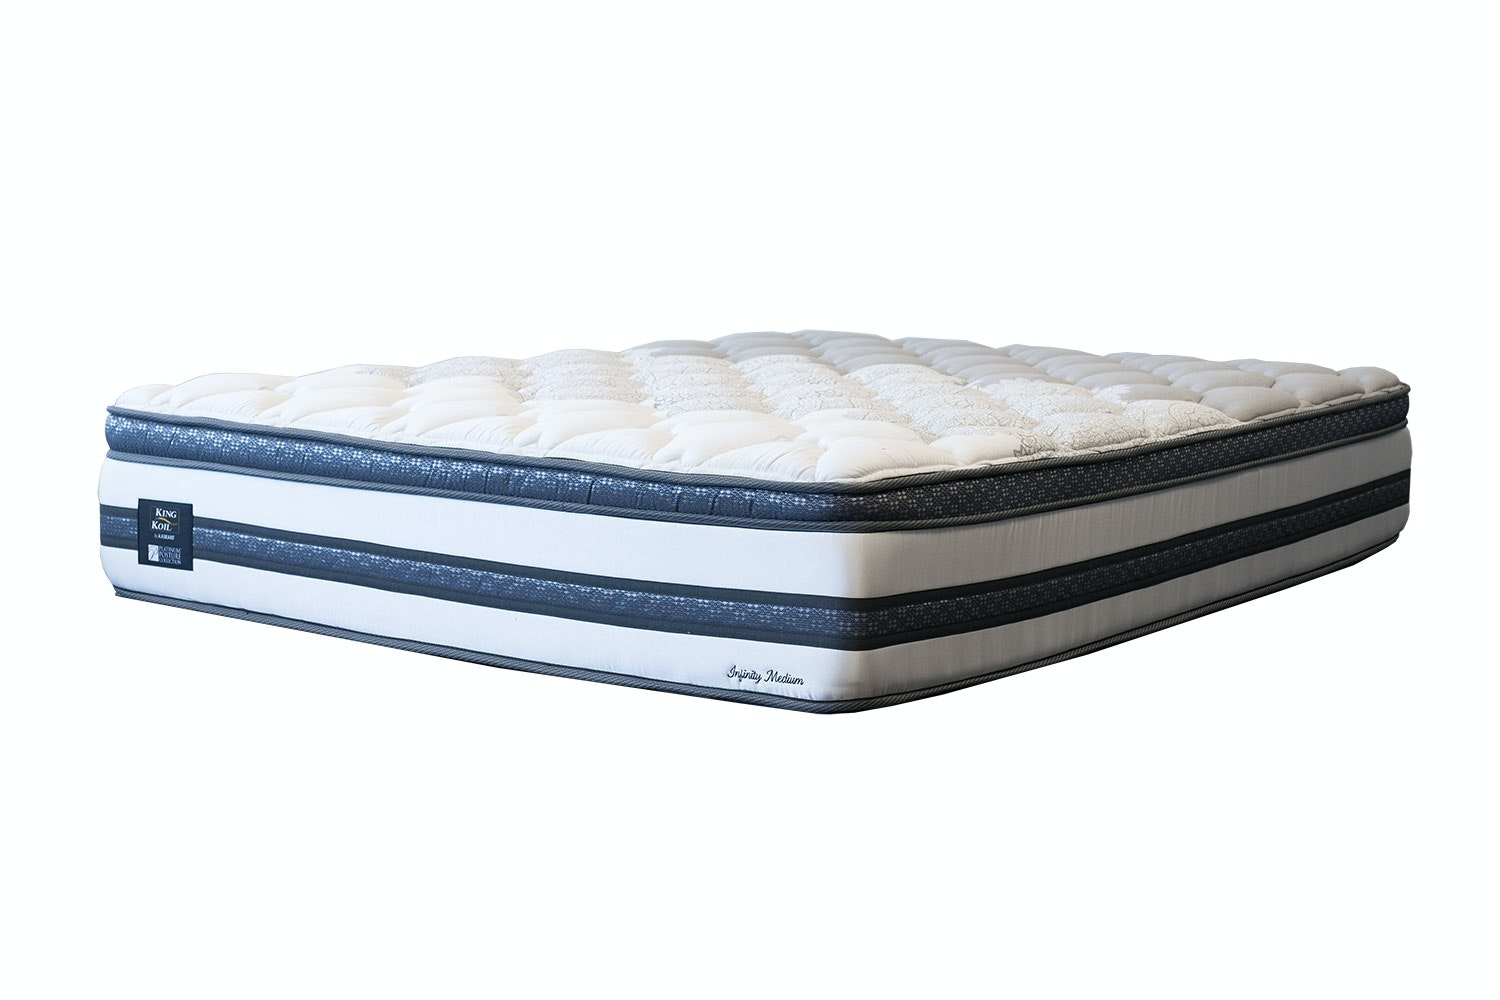 Infinity Medium Californian King Mattress by King Koil